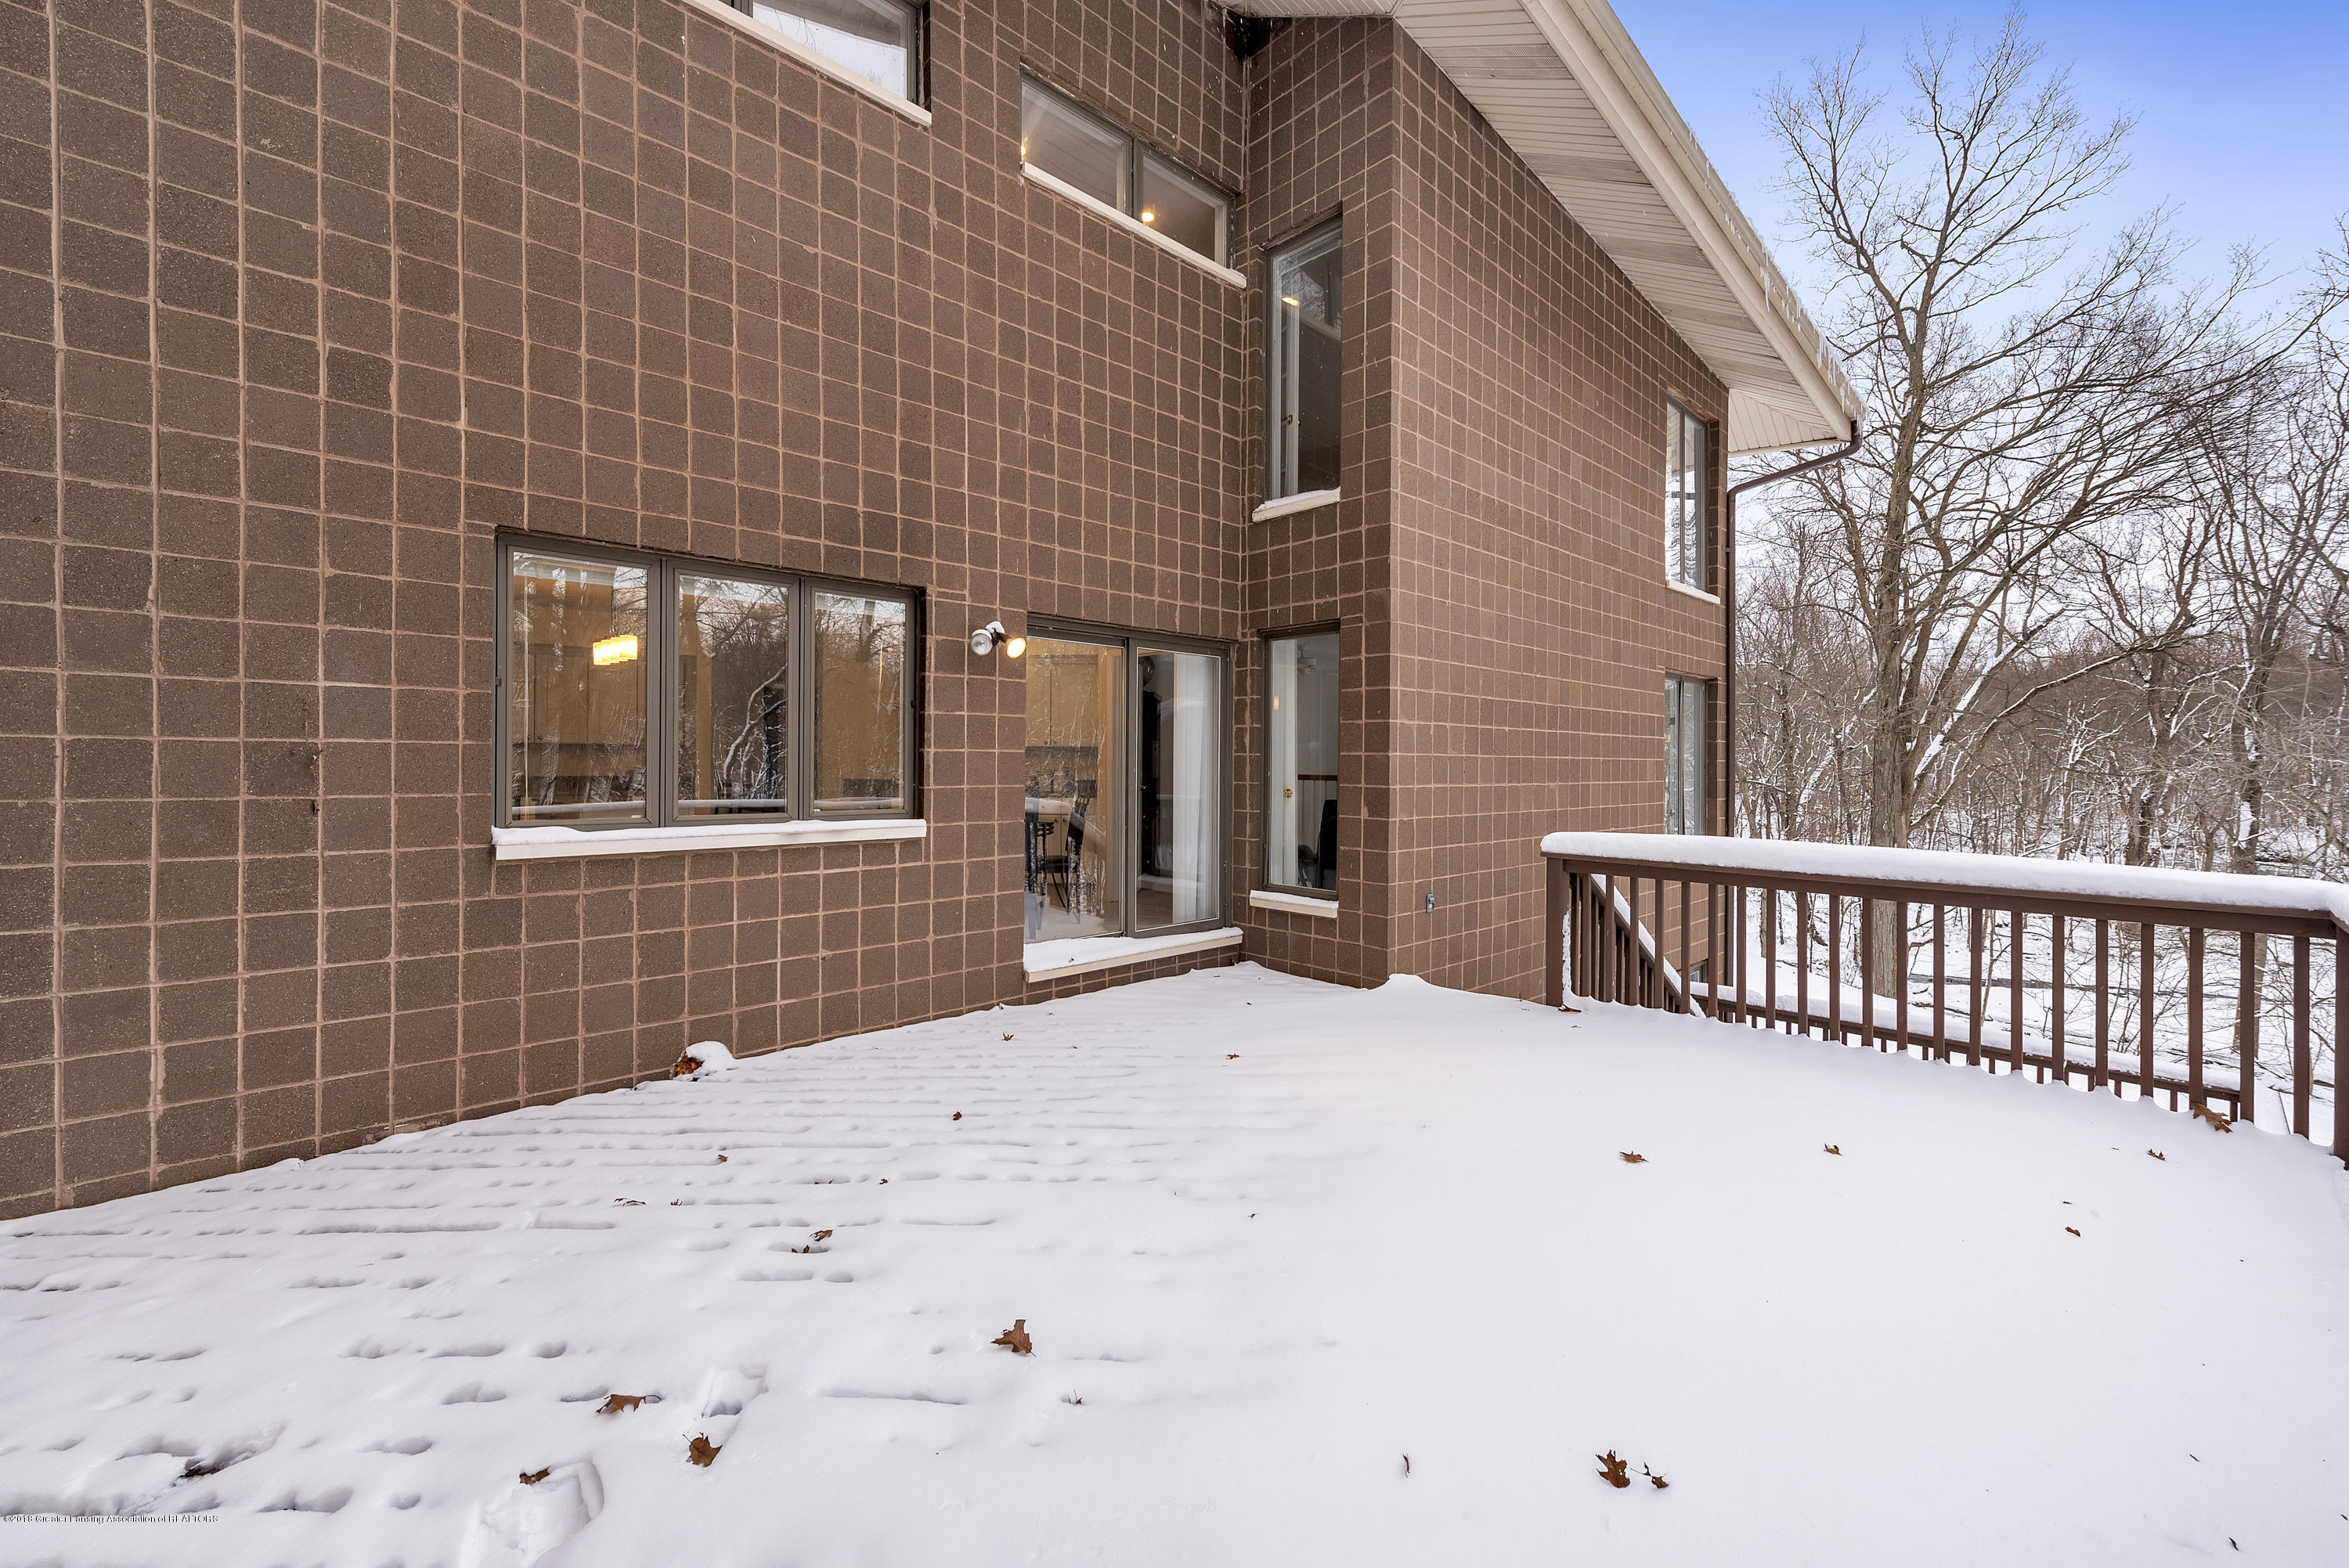 4031 Shoals Dr - 4031-Shoals-Drive-Okemos-MI-48864-window - 45